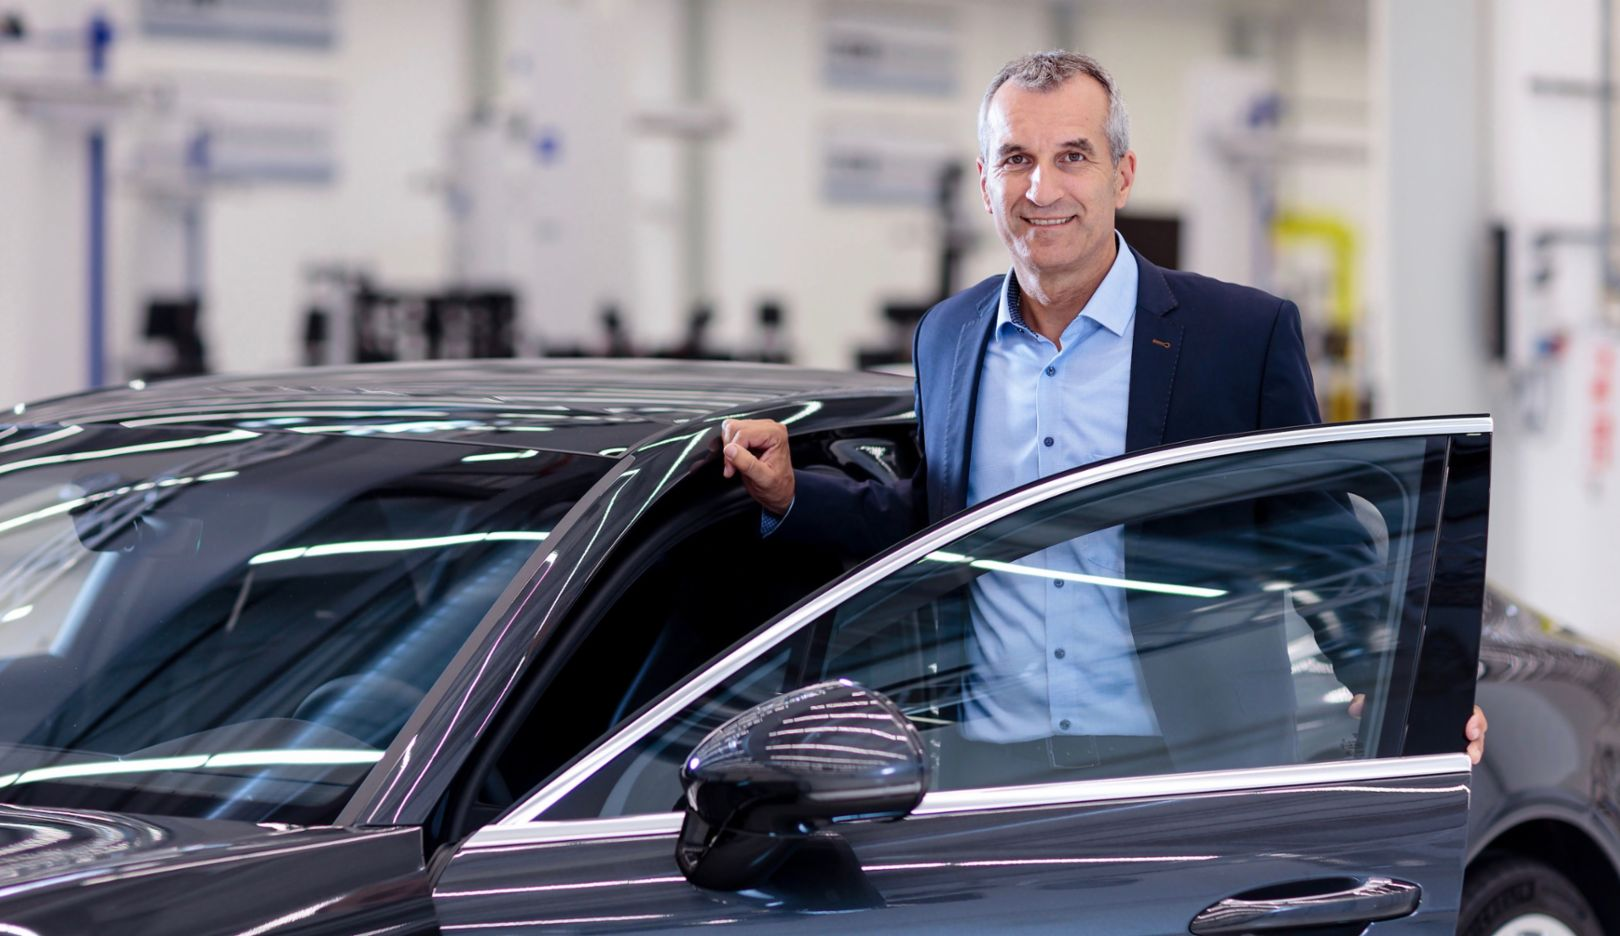 Albrecht Reimold, Member of the Executive Board for Production and Logistics, 2018, Porsche AG